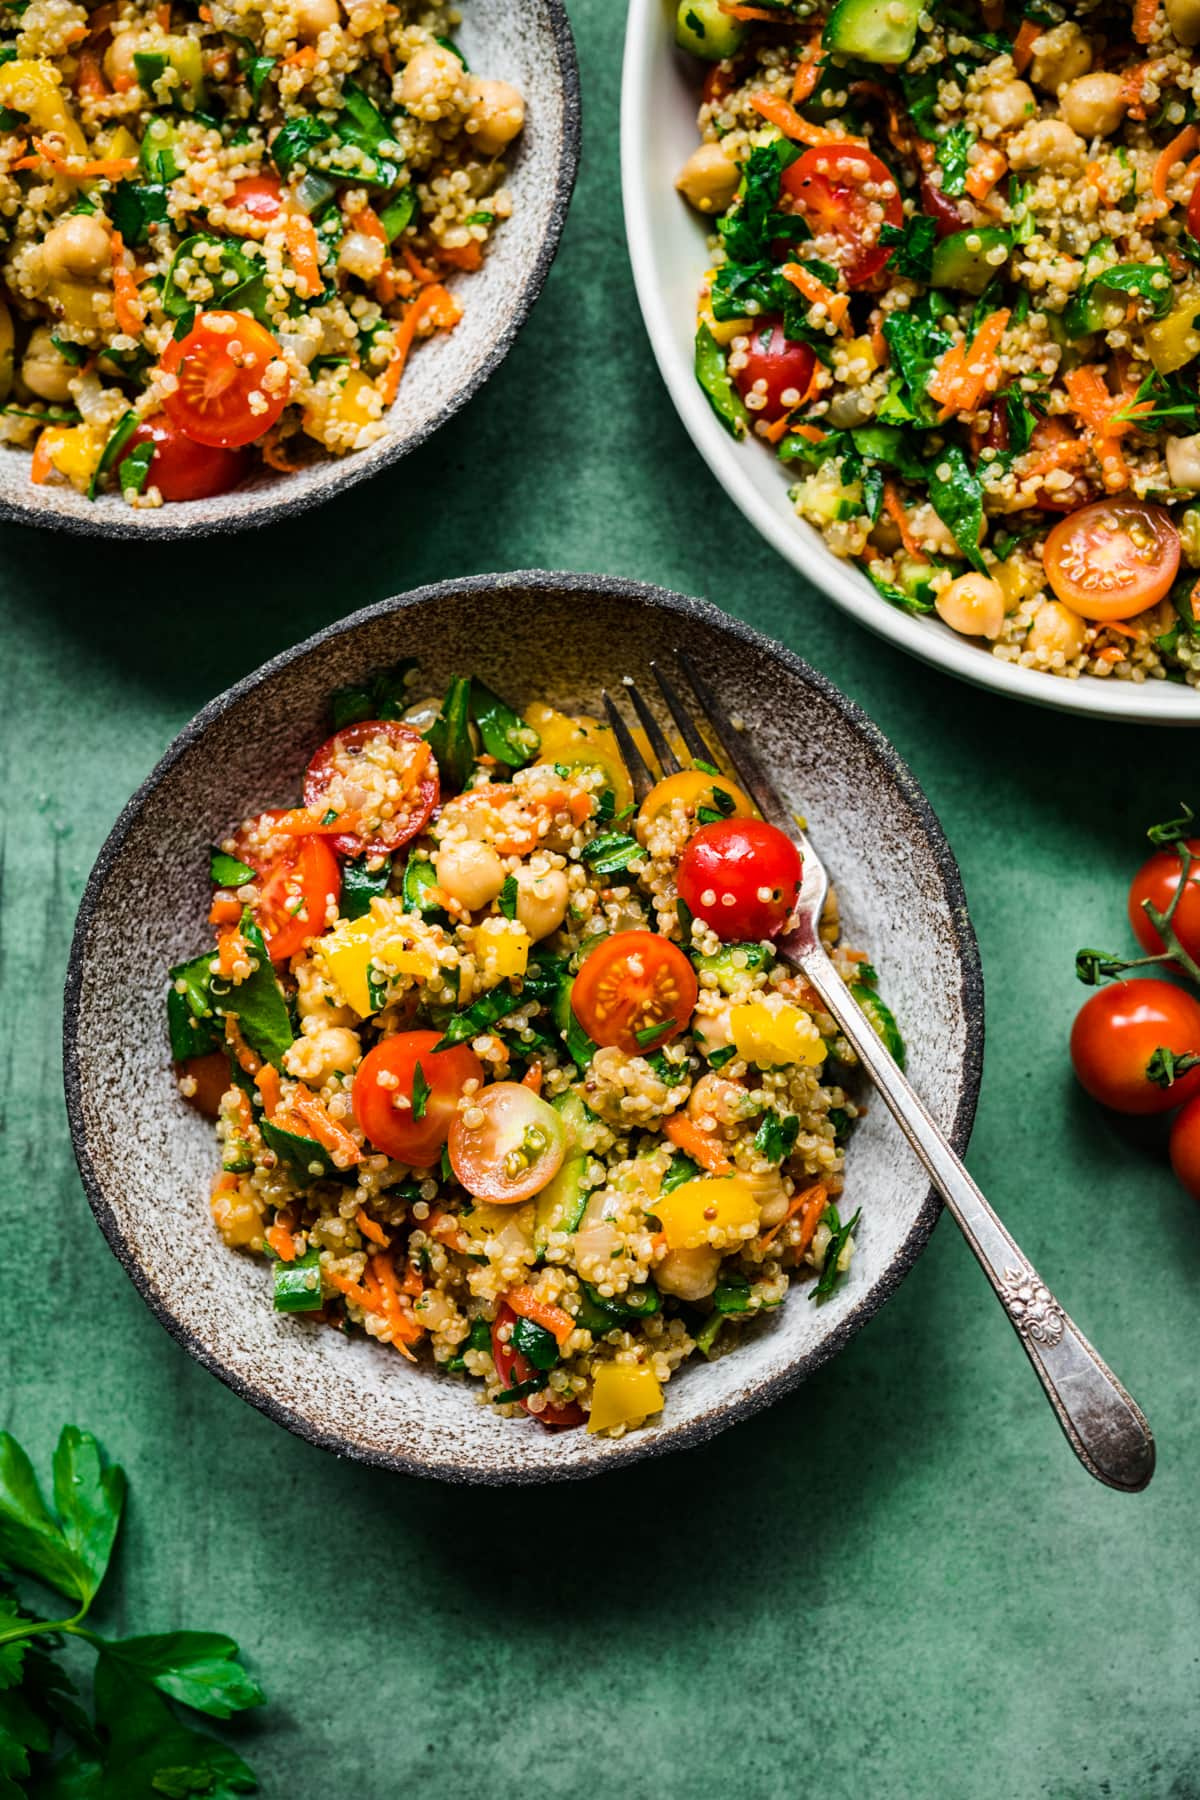 overhead view of vegan quinoa chickpea salad with vegetables in a bowl on green backdrop.